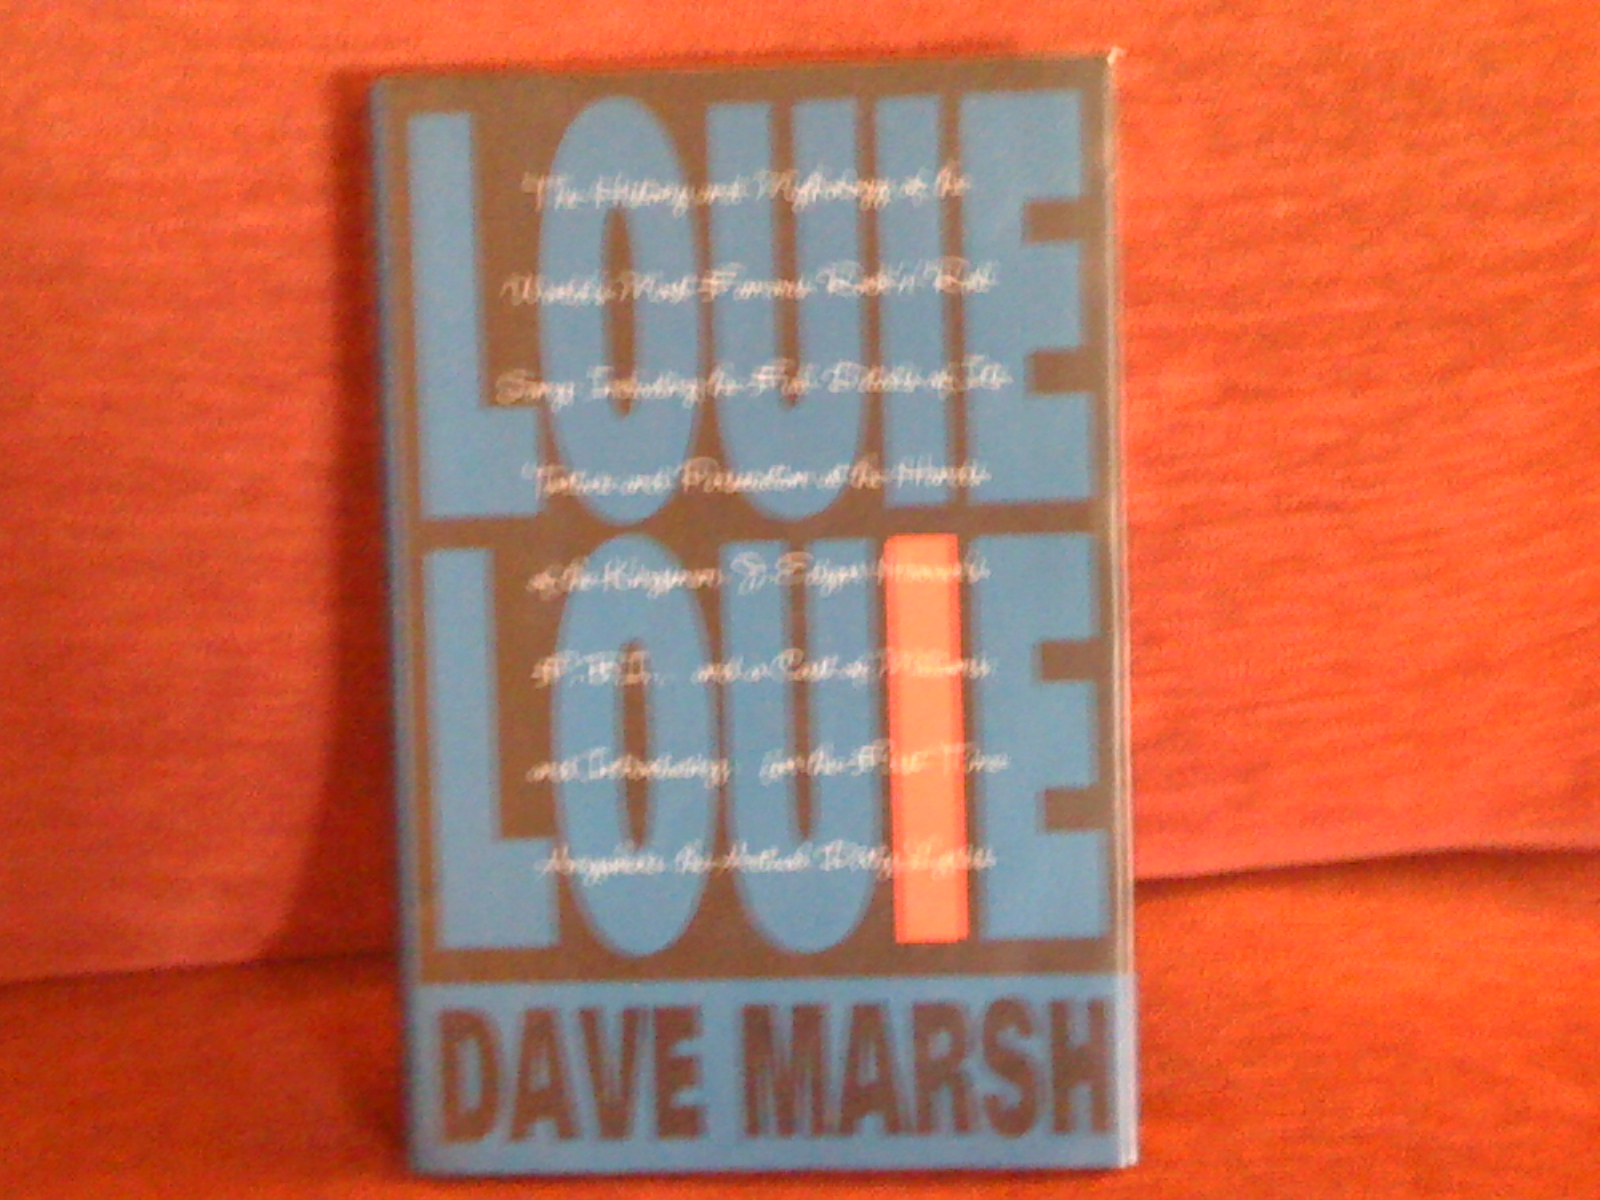 Cover of Louie, Louie by Dave Marsh